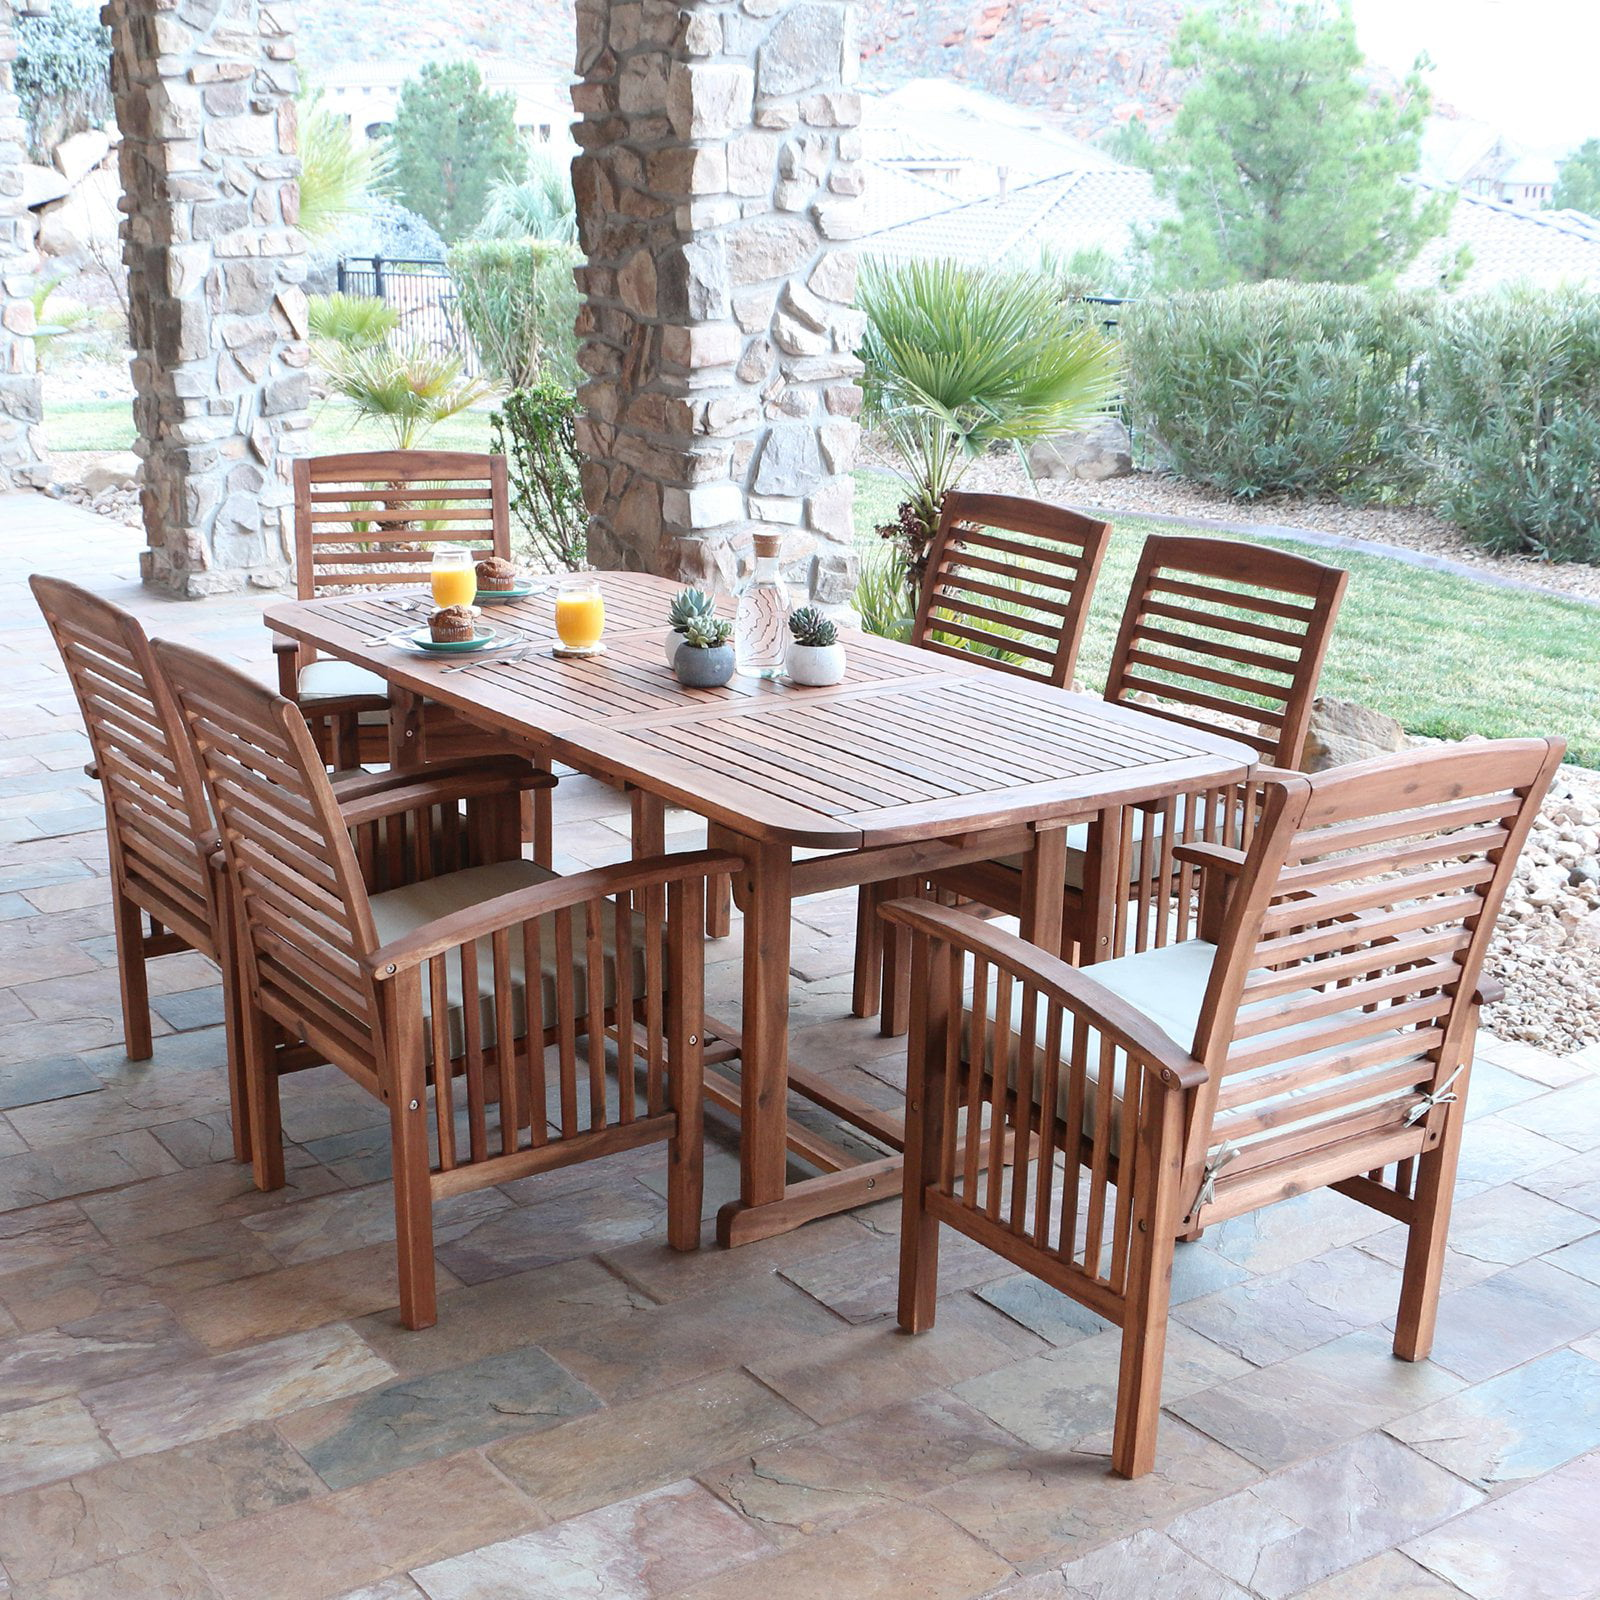 patio furniture dining weather jensen sacramento set aluminum govenor leisure all wicker alpha outdoor